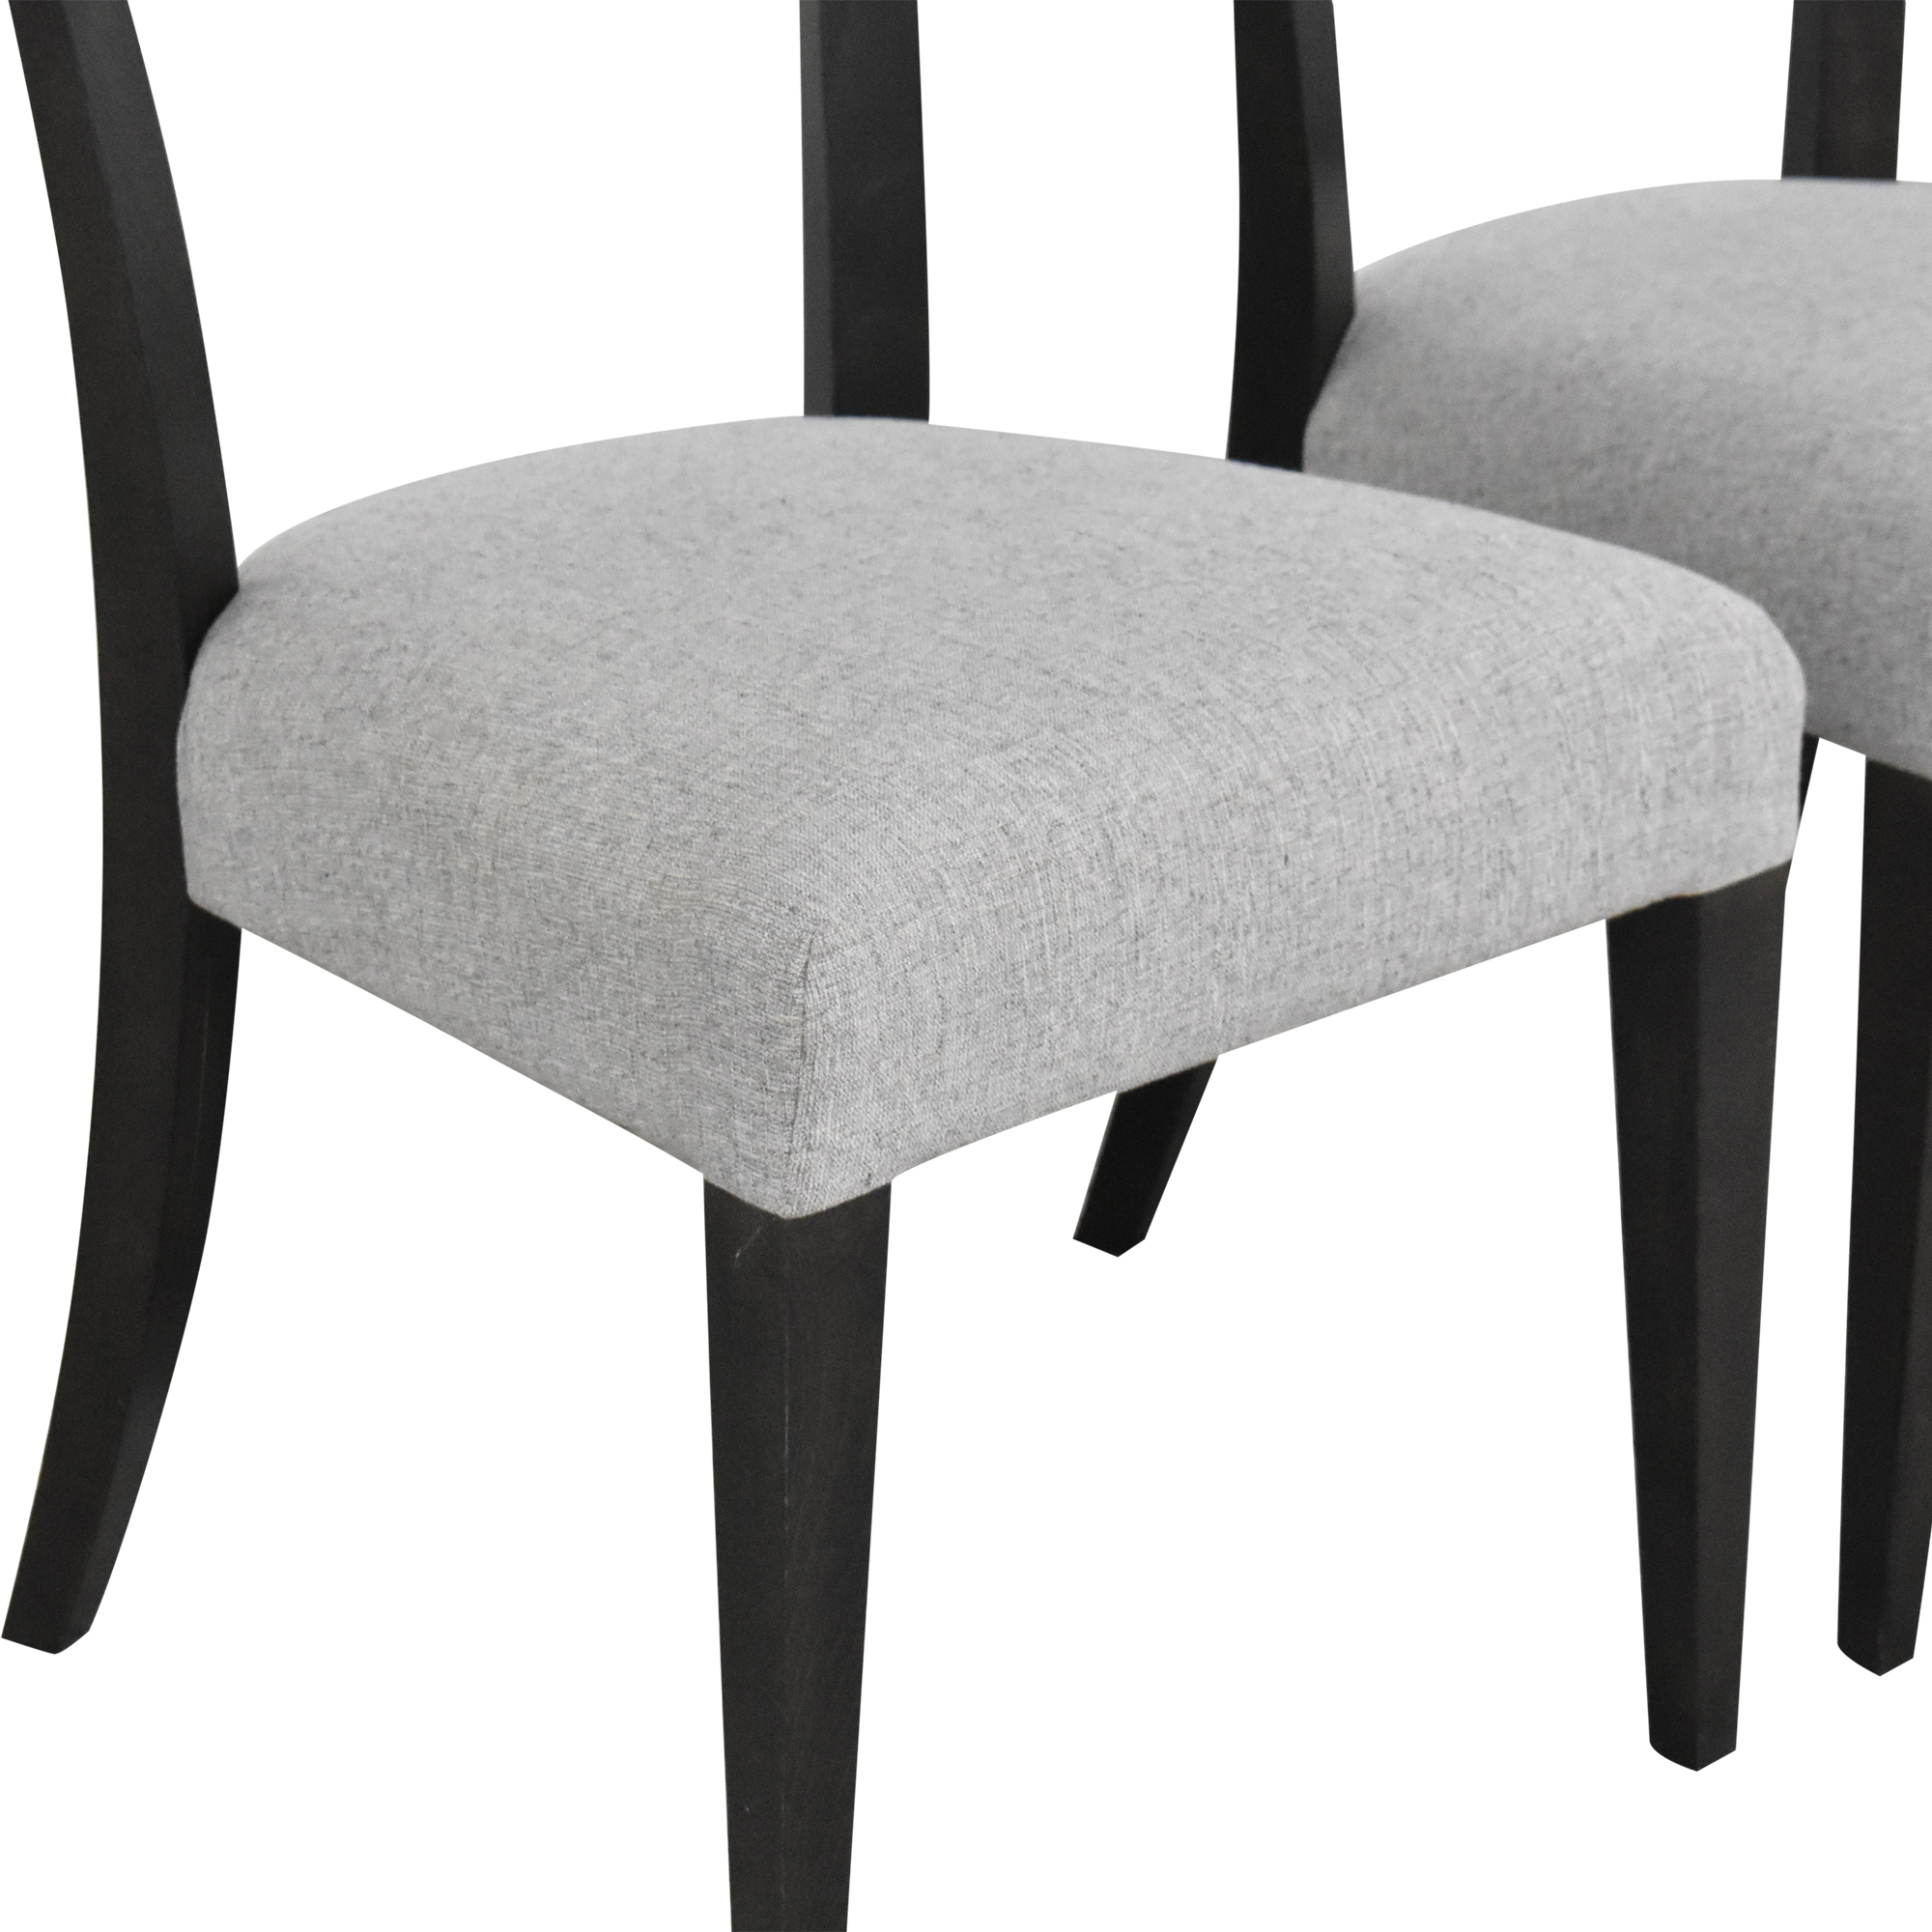 Saloom Saloom Peter Francis Dining Side Chairs for sale